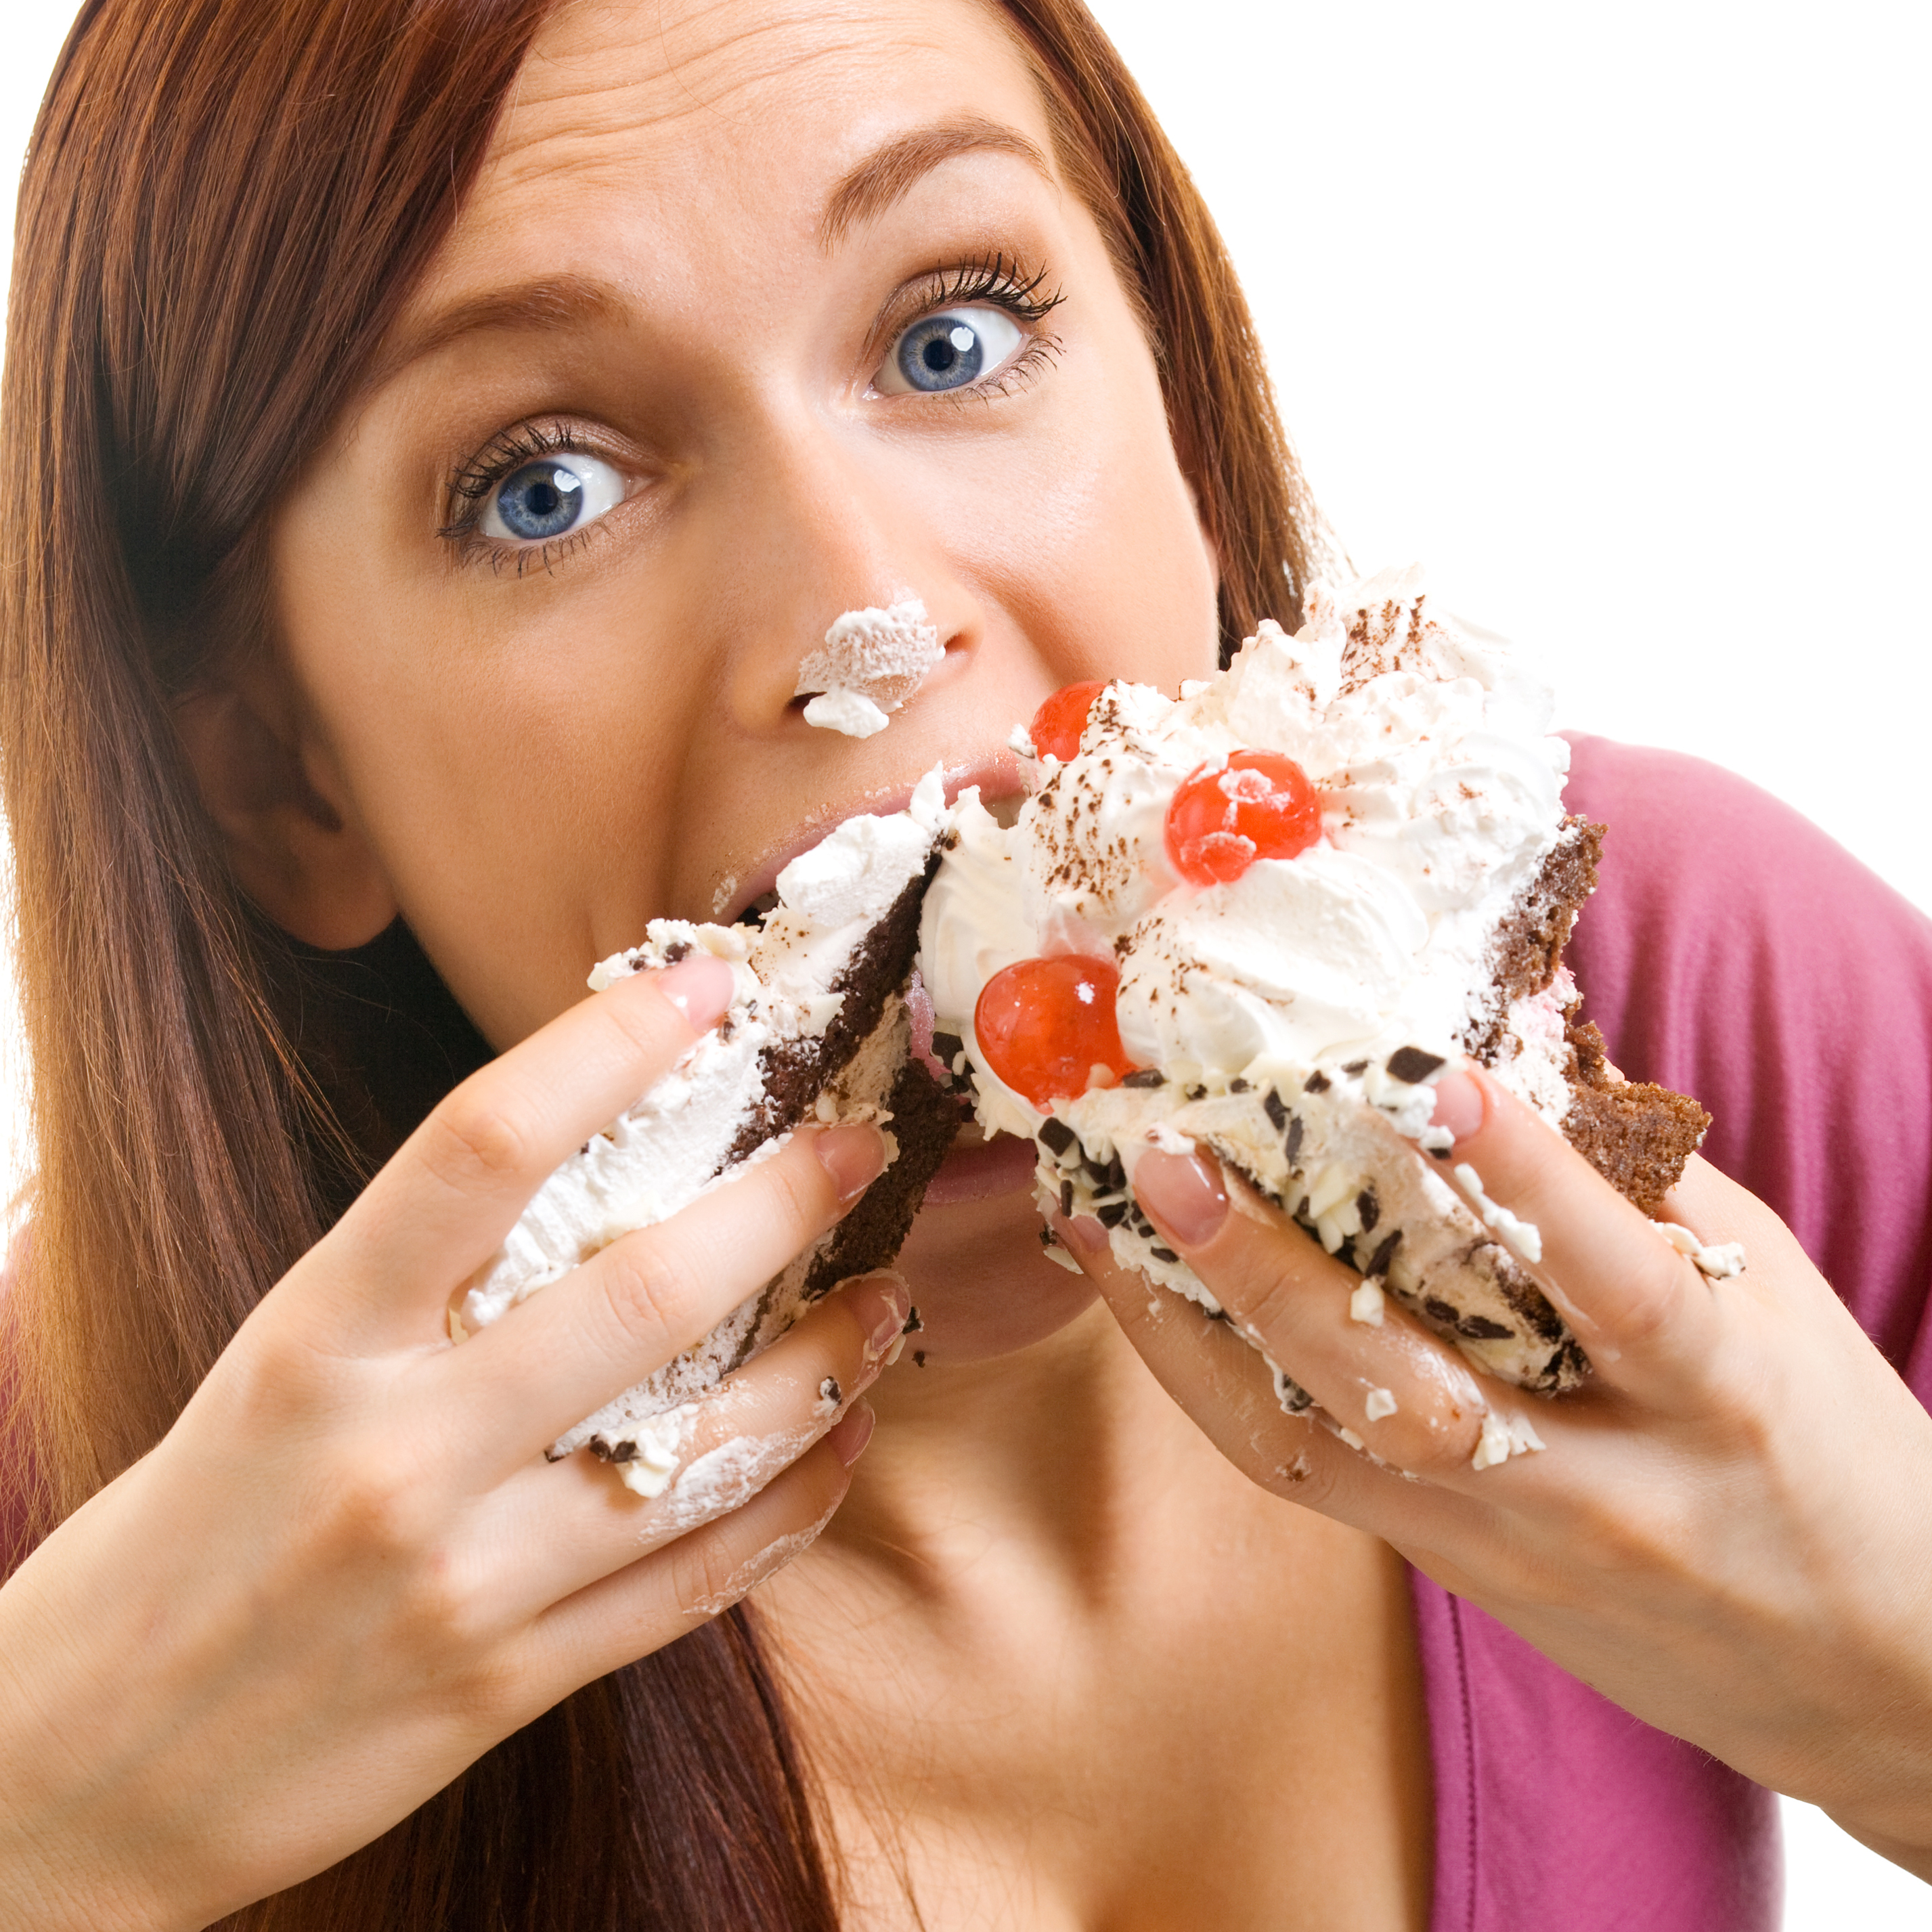 woman-eating-cake.jpg